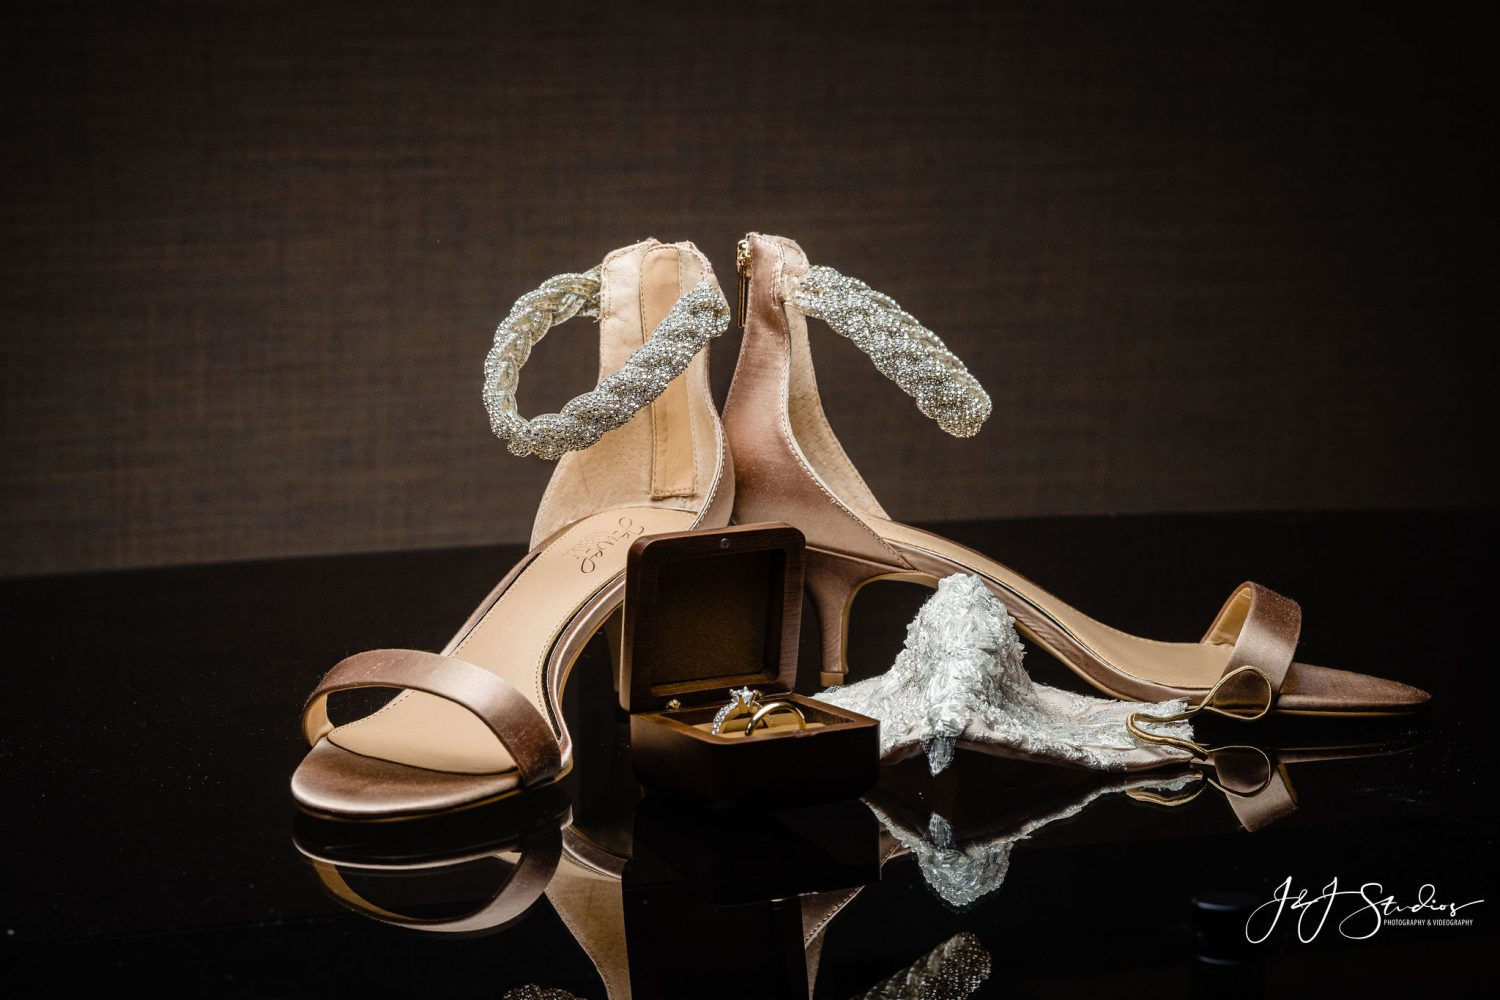 shoes wedding photography timeline guidelines